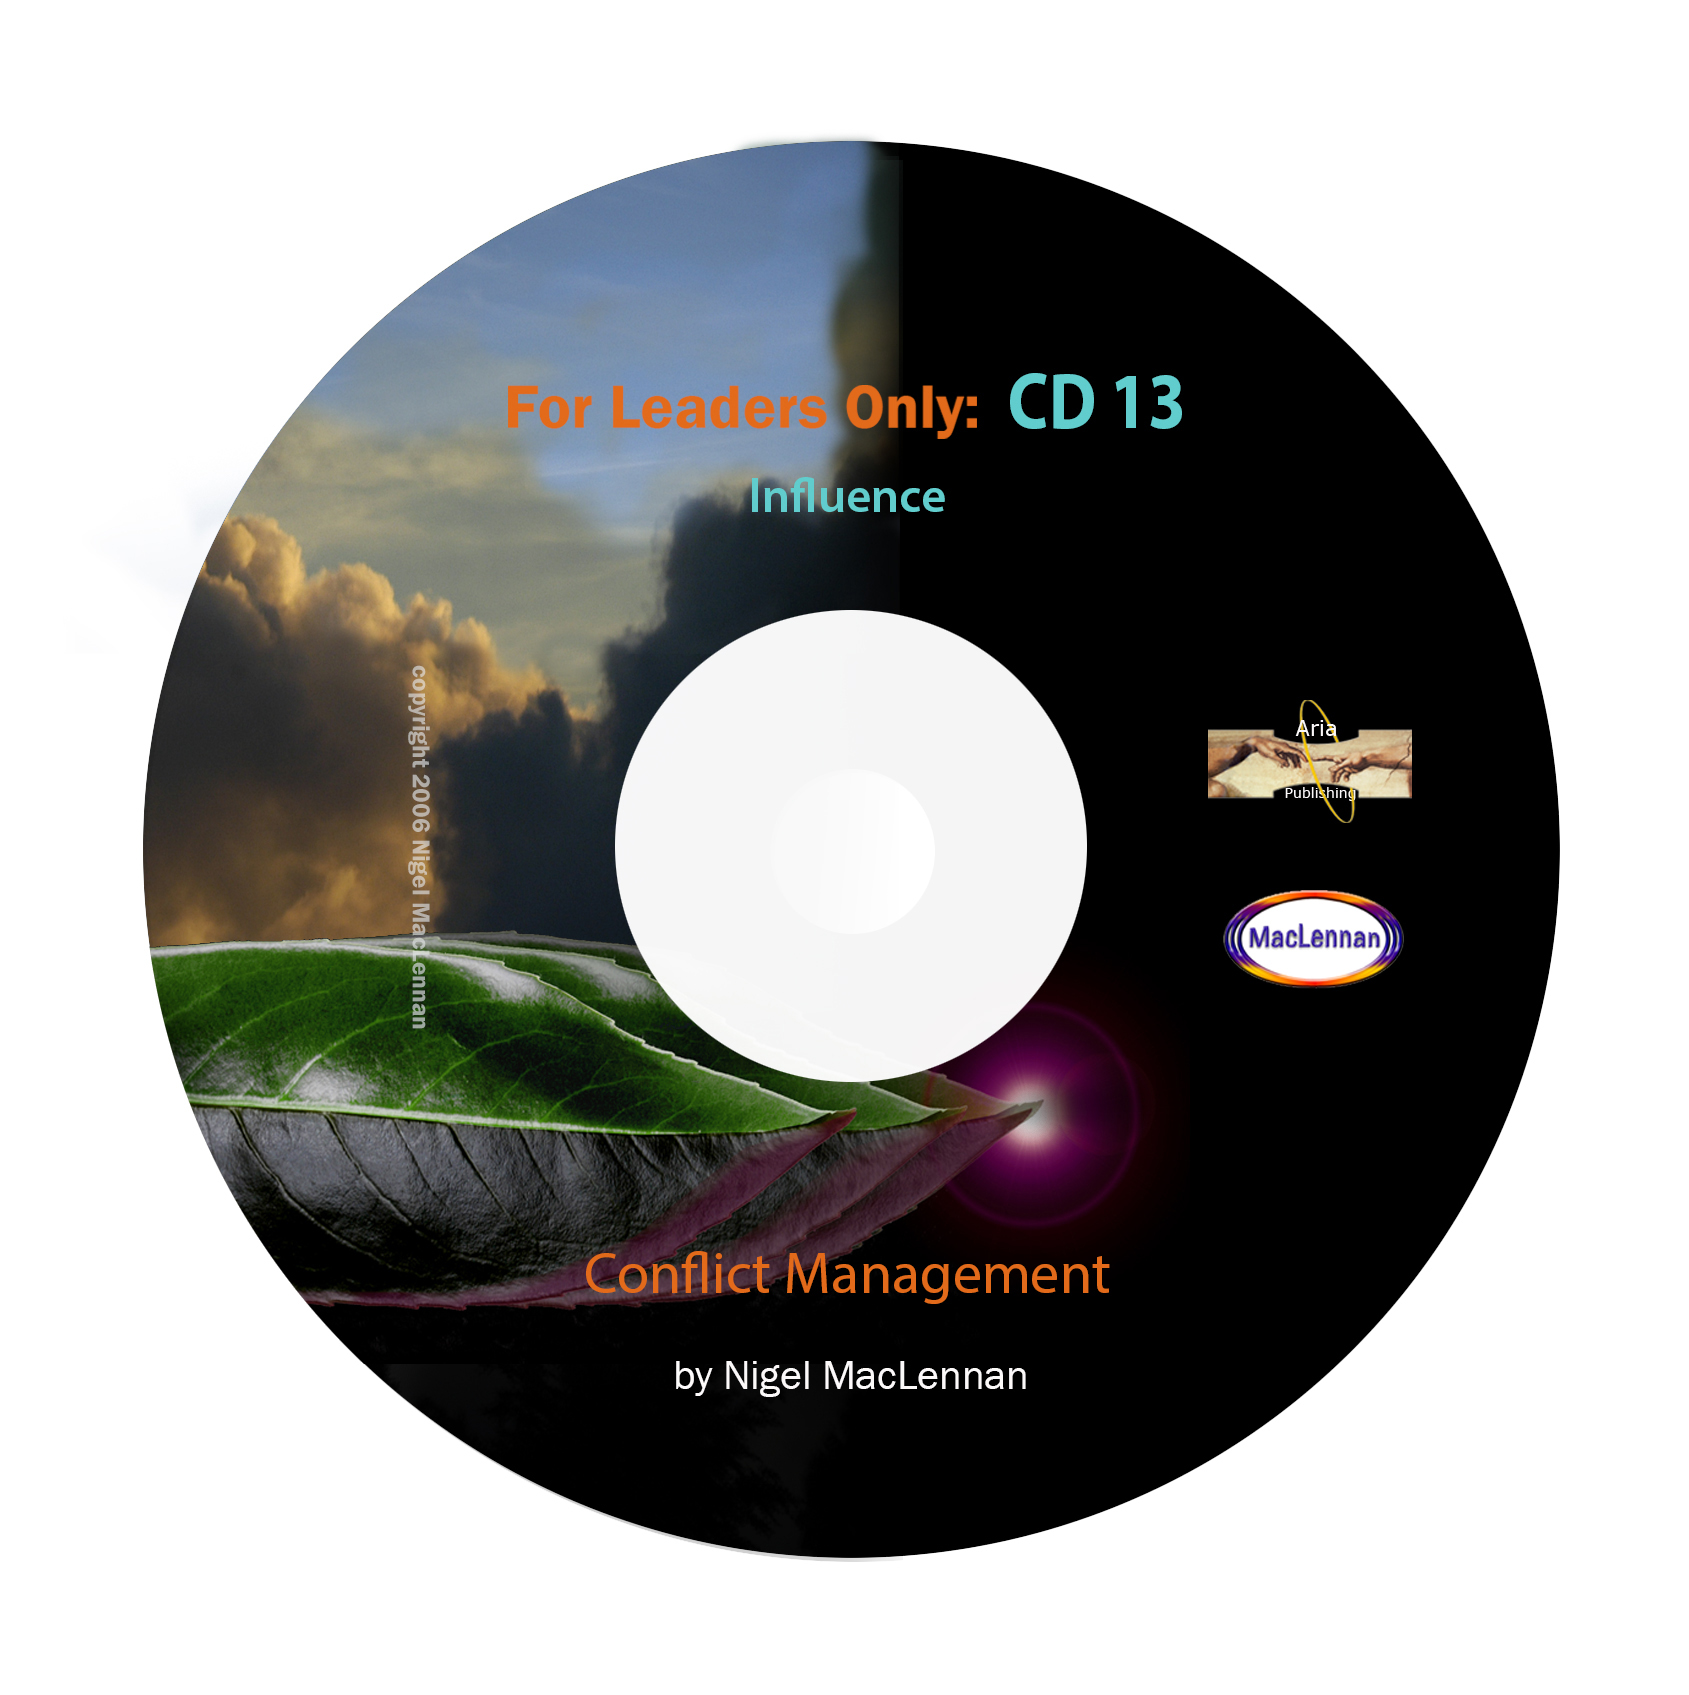 For Leaders Only - Conflict Management CD